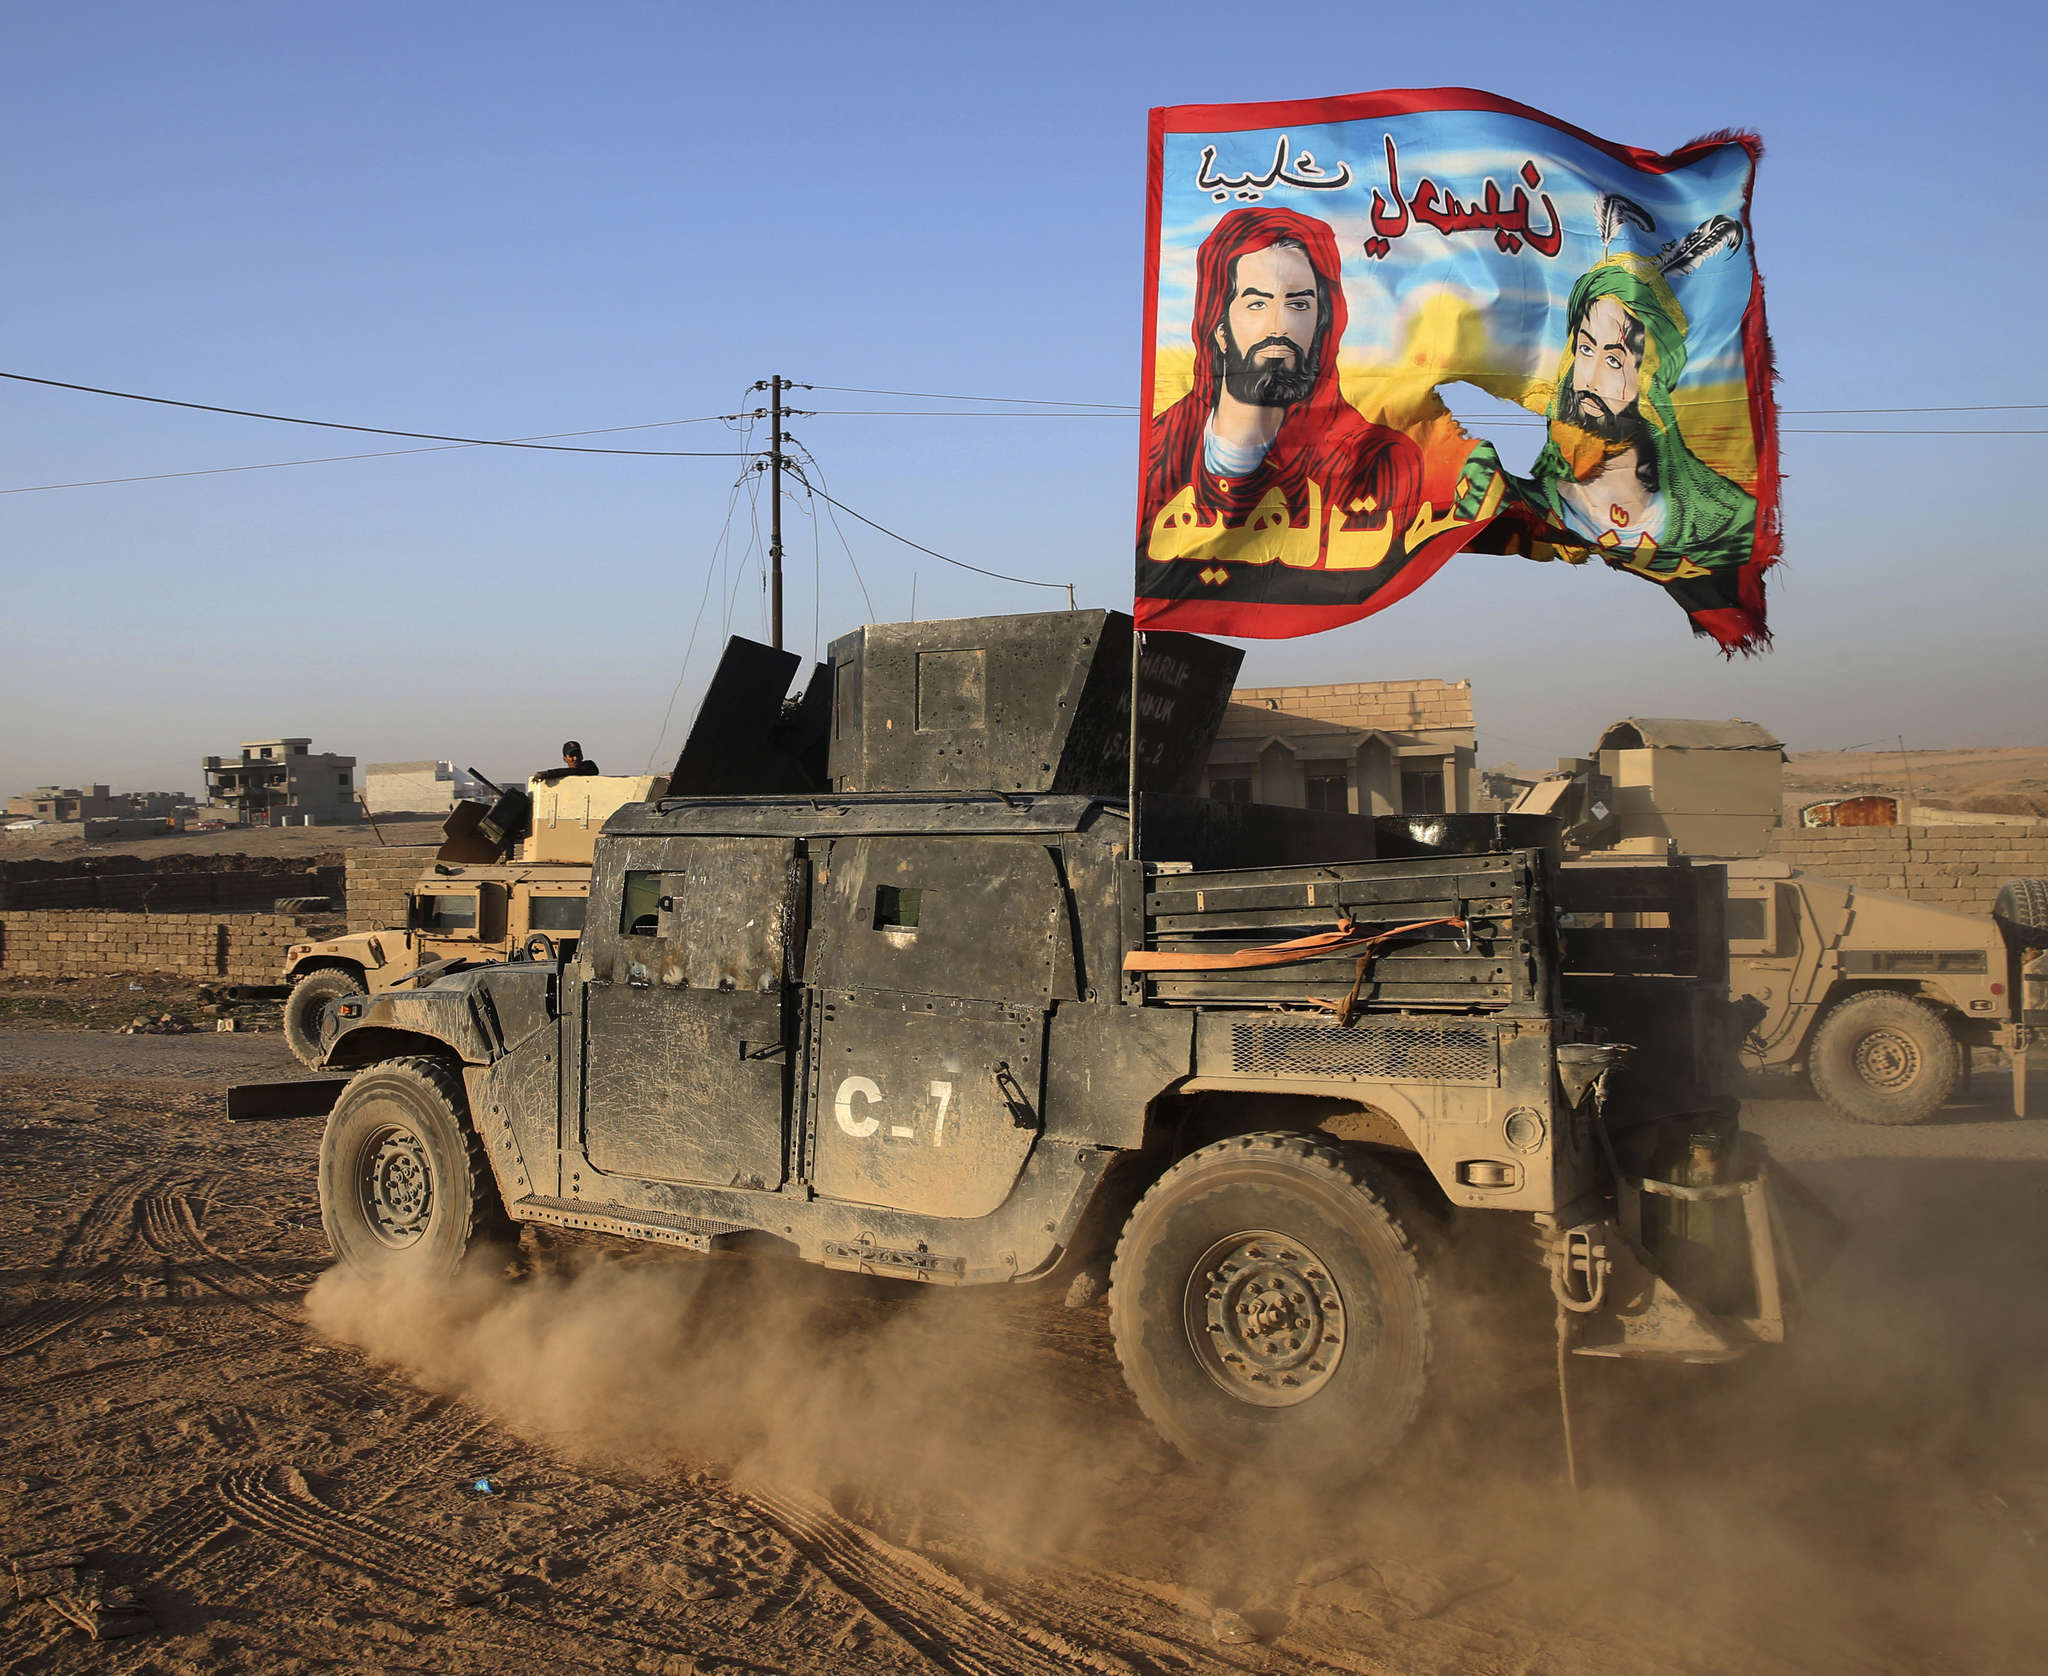 An Iraqi military vehicle in Mosul bears a Shiite flag with the likenesses of Imams Hussain and Ali and a message of fealty to Hussain.